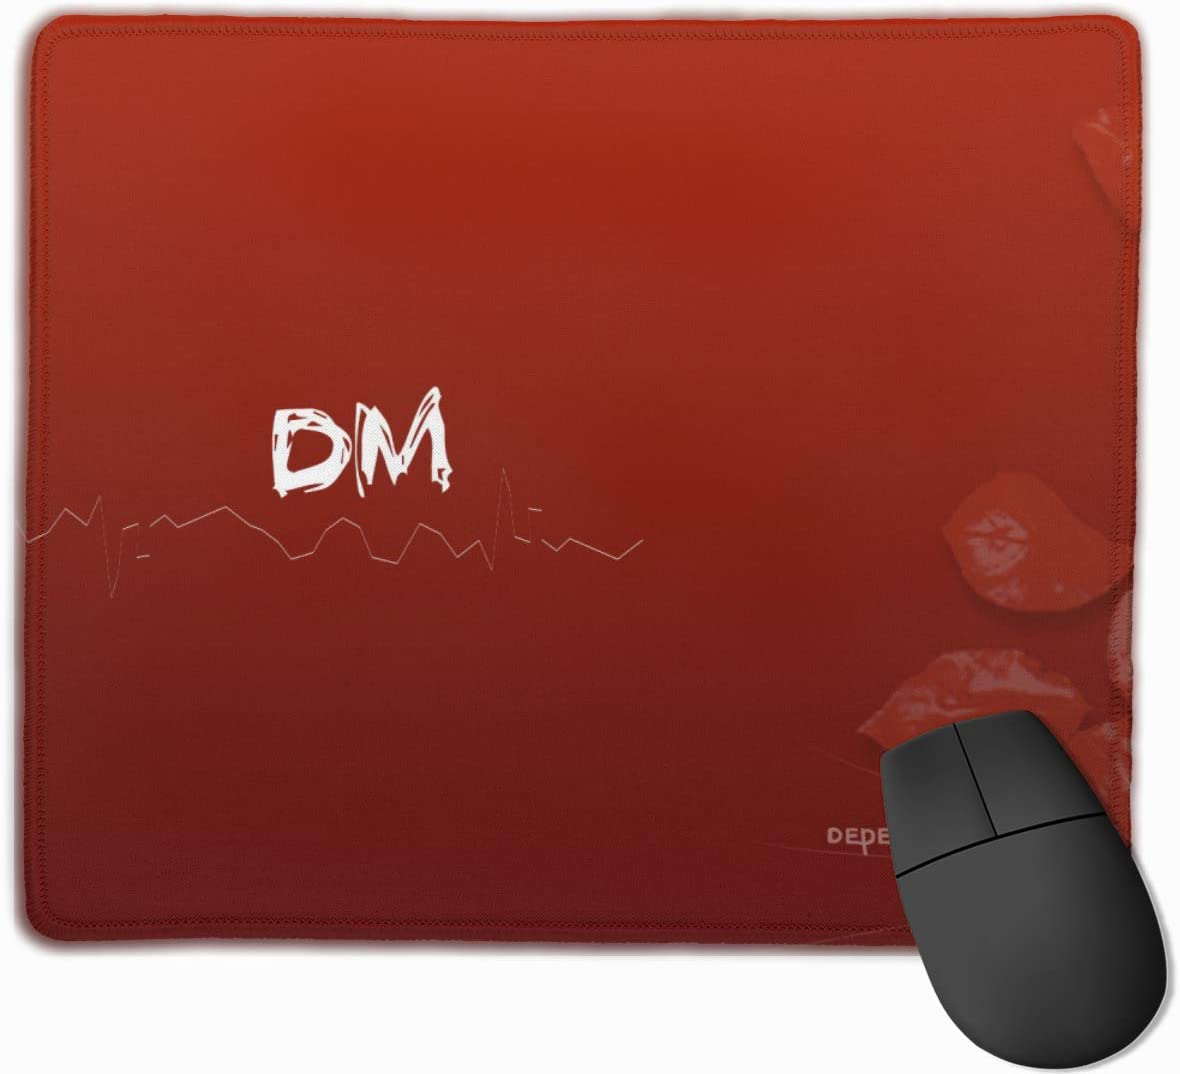 Anti Slip Mouse Mat for Desktops Computer Depeche Mode Mouse Pad with Designs